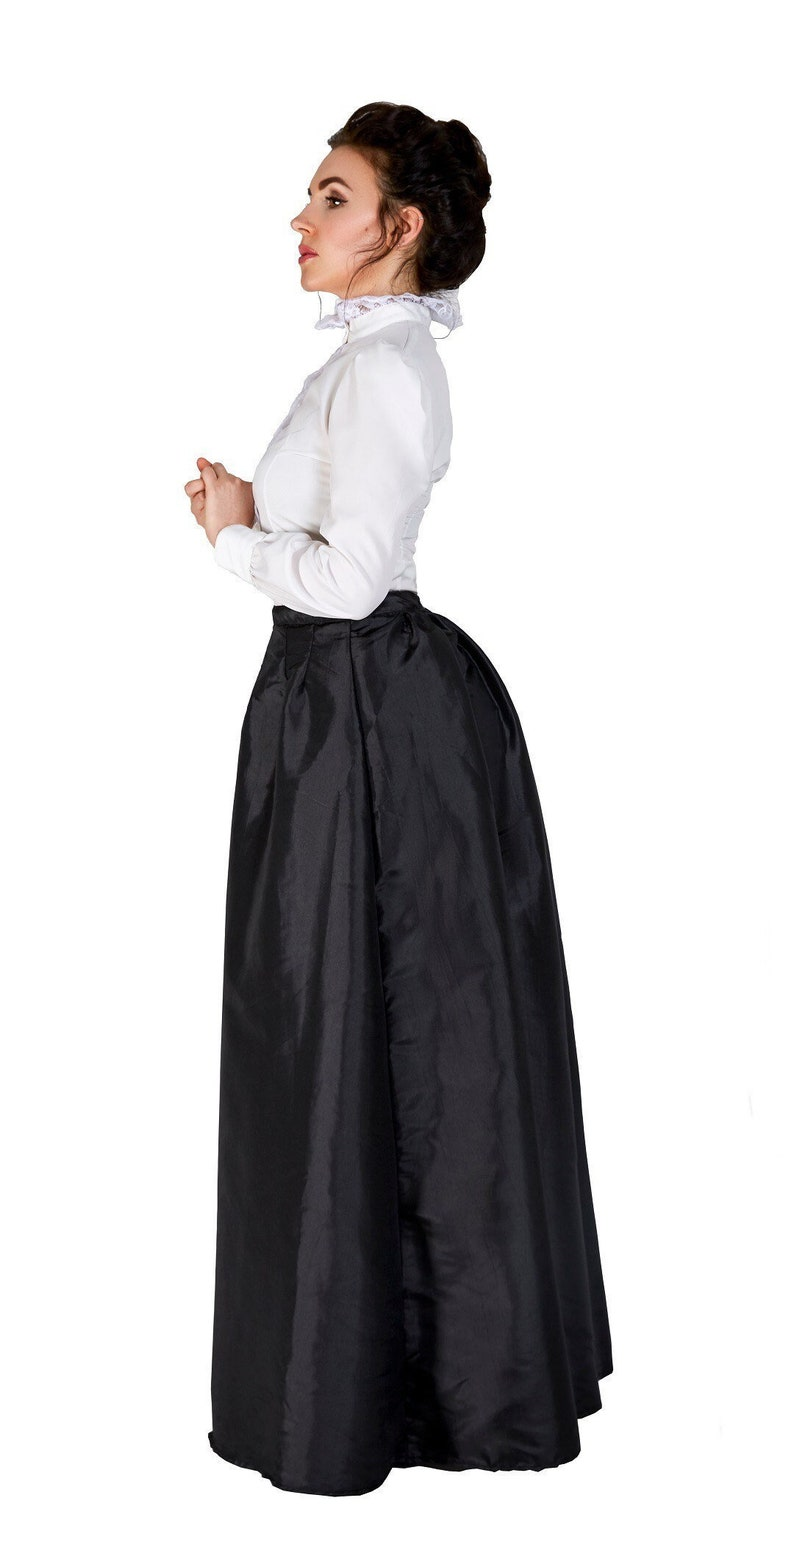 Victorian Dresses | Victorian Ballgowns | Victorian Clothing Victorian Walking Skirt and Blouse Set $38.99 AT vintagedancer.com